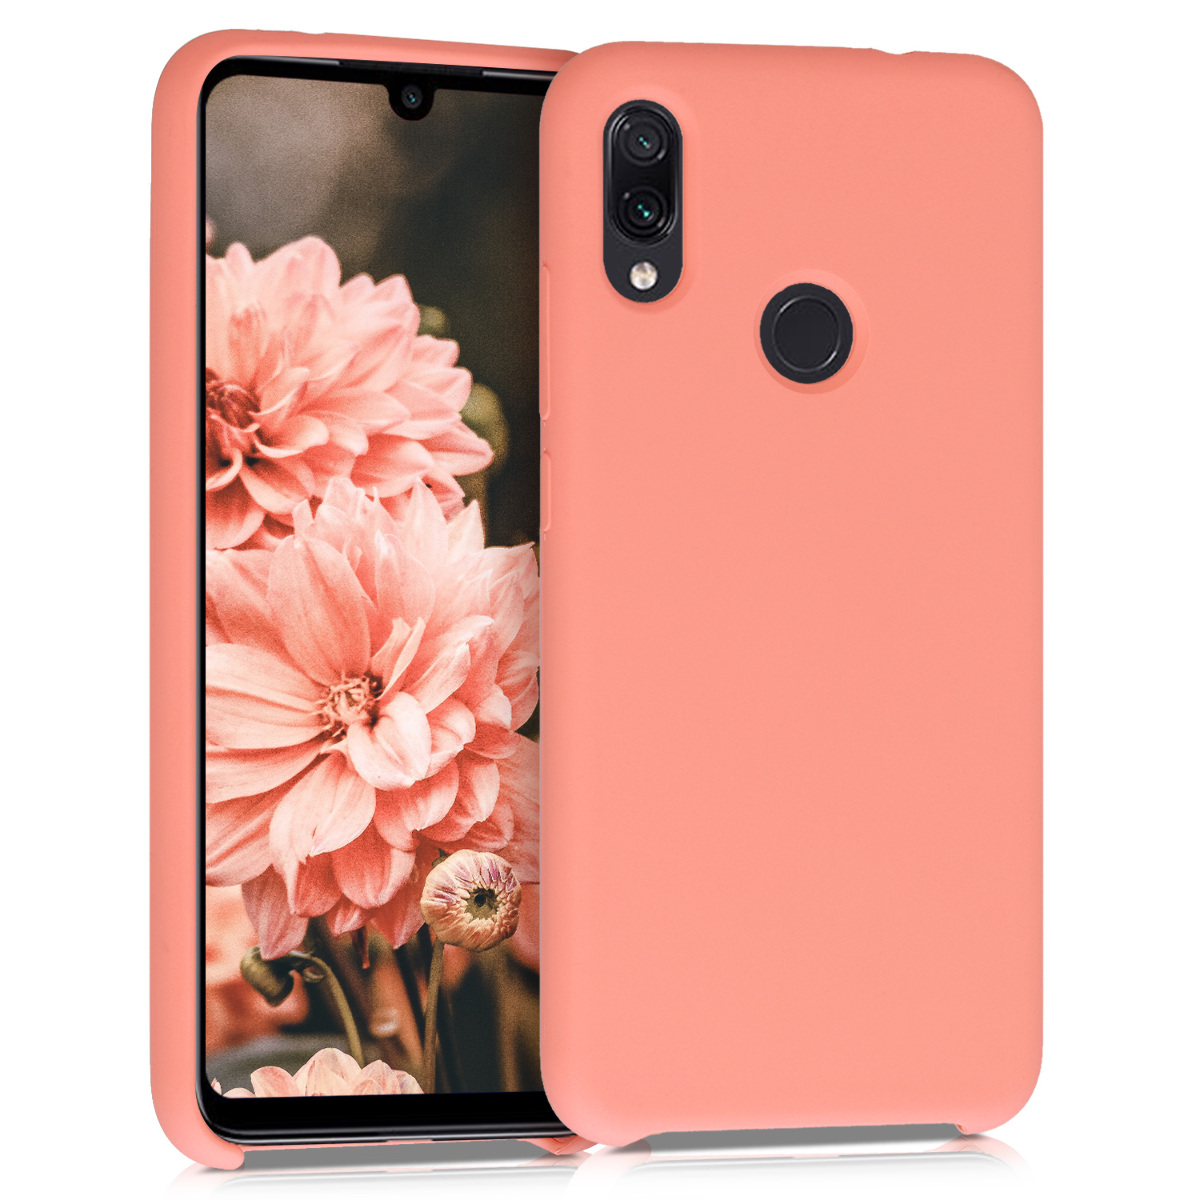 KW Θήκη Σιλικόνης Xiaomi Redmi Note 7 / Note 7 Pro - Soft Flexible Rubber Protective Cover  - Coral Matte (48714.56)